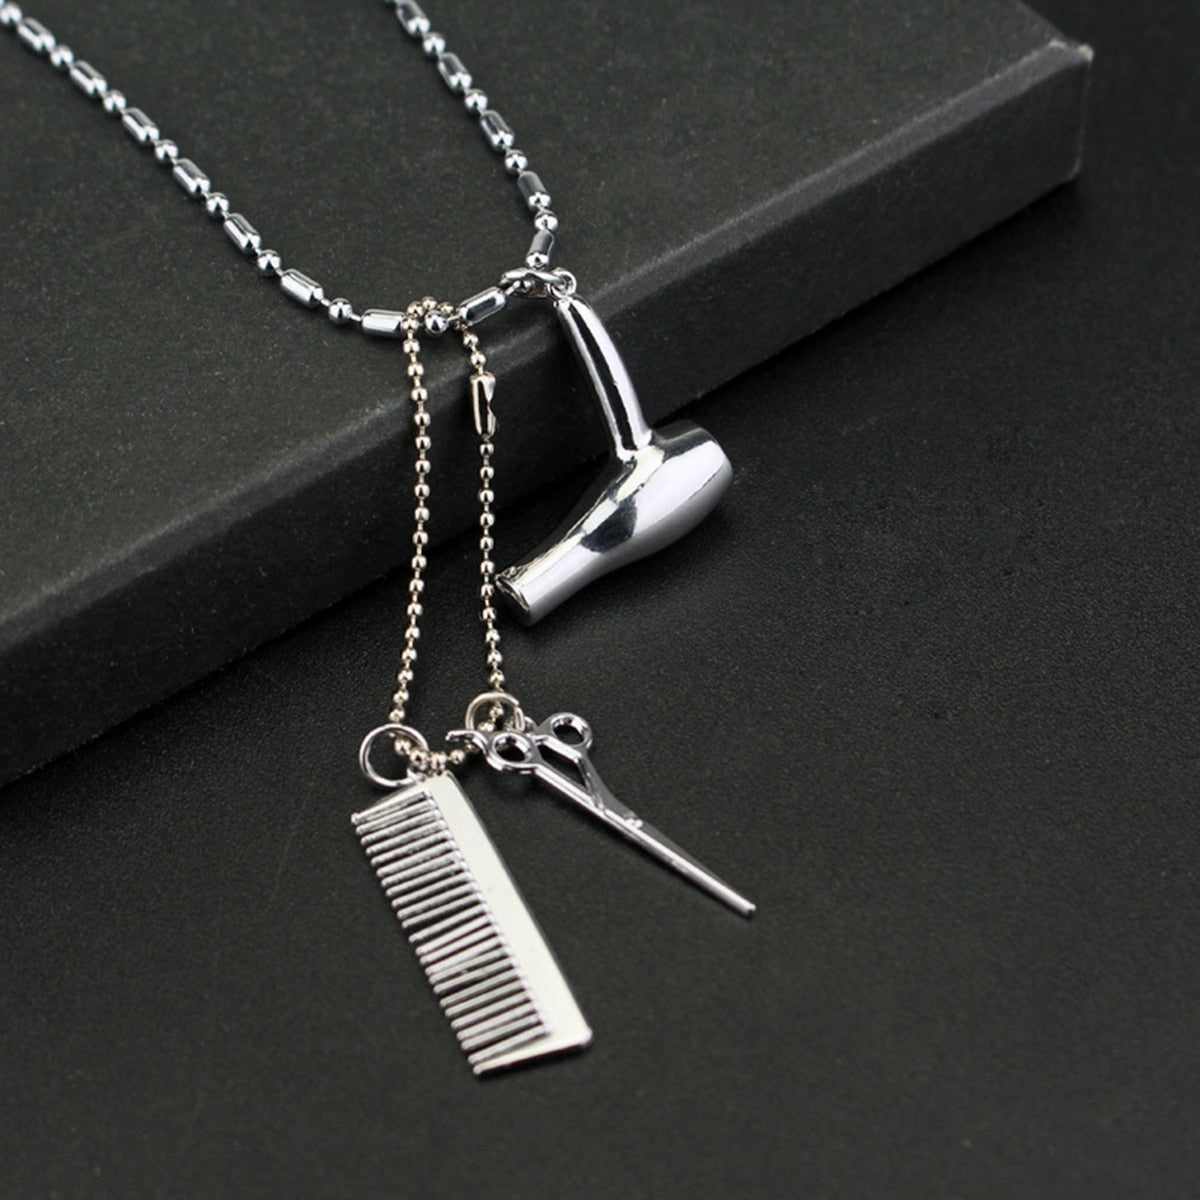 Woman's Punk Charm Silver Hair Stylist Necklace